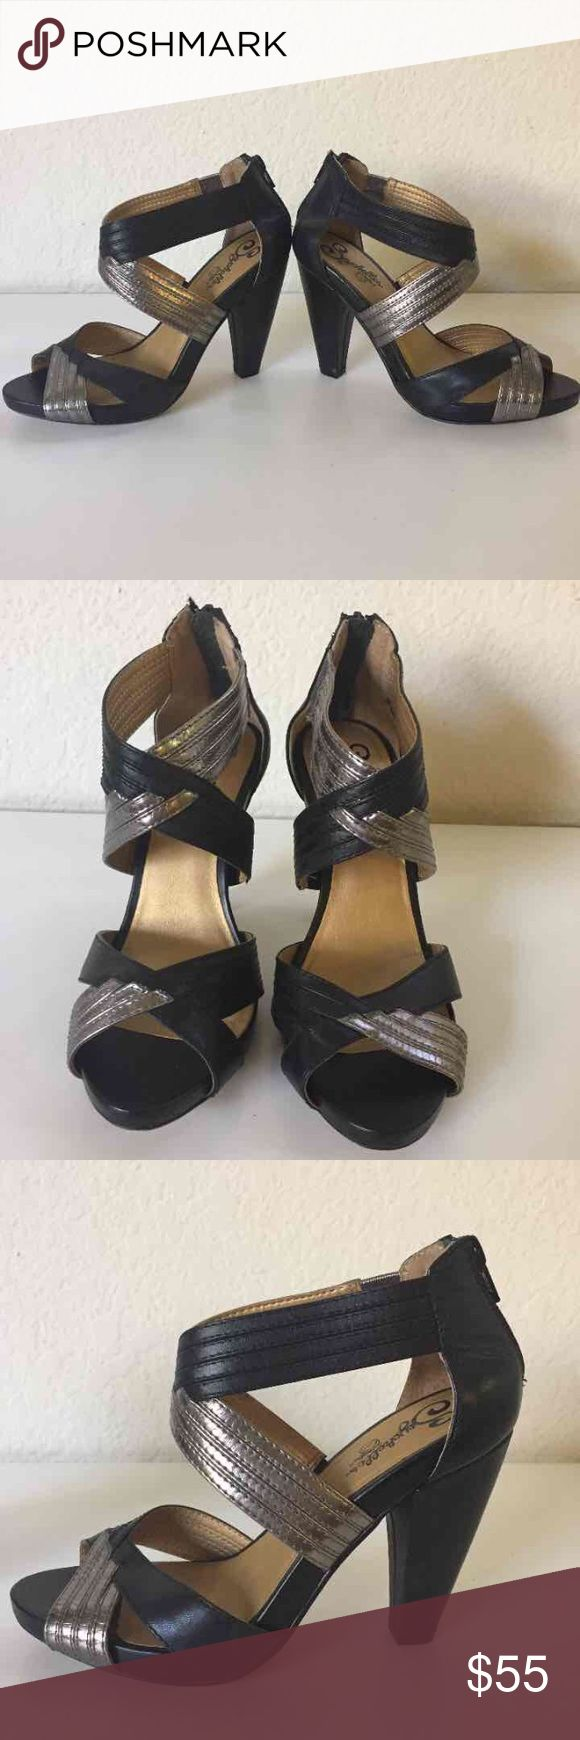 Seychelles Black and Bronze Strap heels Black wedge heels with black and Bronze straps.  Size 7, about 3 1/2 in tall.   Gently worn. No scratches to the leather. Very minor marks on the heel part. They're not scratches bc it didn't rip the leather. When worn on, it's not noticeable. It's in great condition.  Forgot the exact retail price but Seychelles runs around $99+  It does NOT come with the original box.  I threw it away while back.   **All my items will be wrapped with tissue paper…